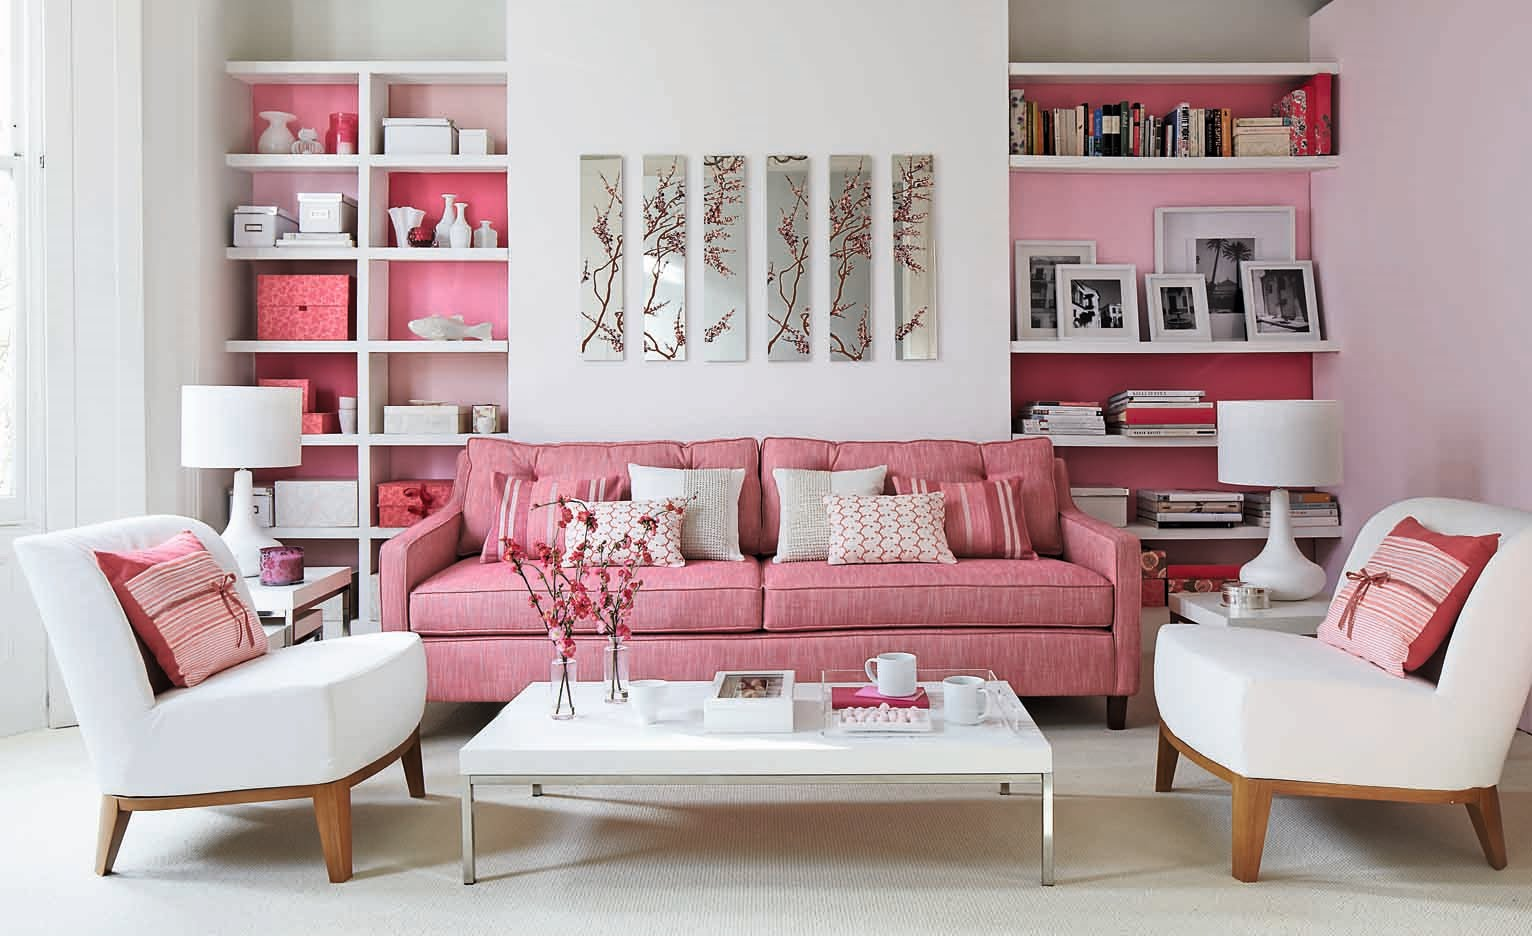 pink sofa furniture chesterfield from china creative juice think